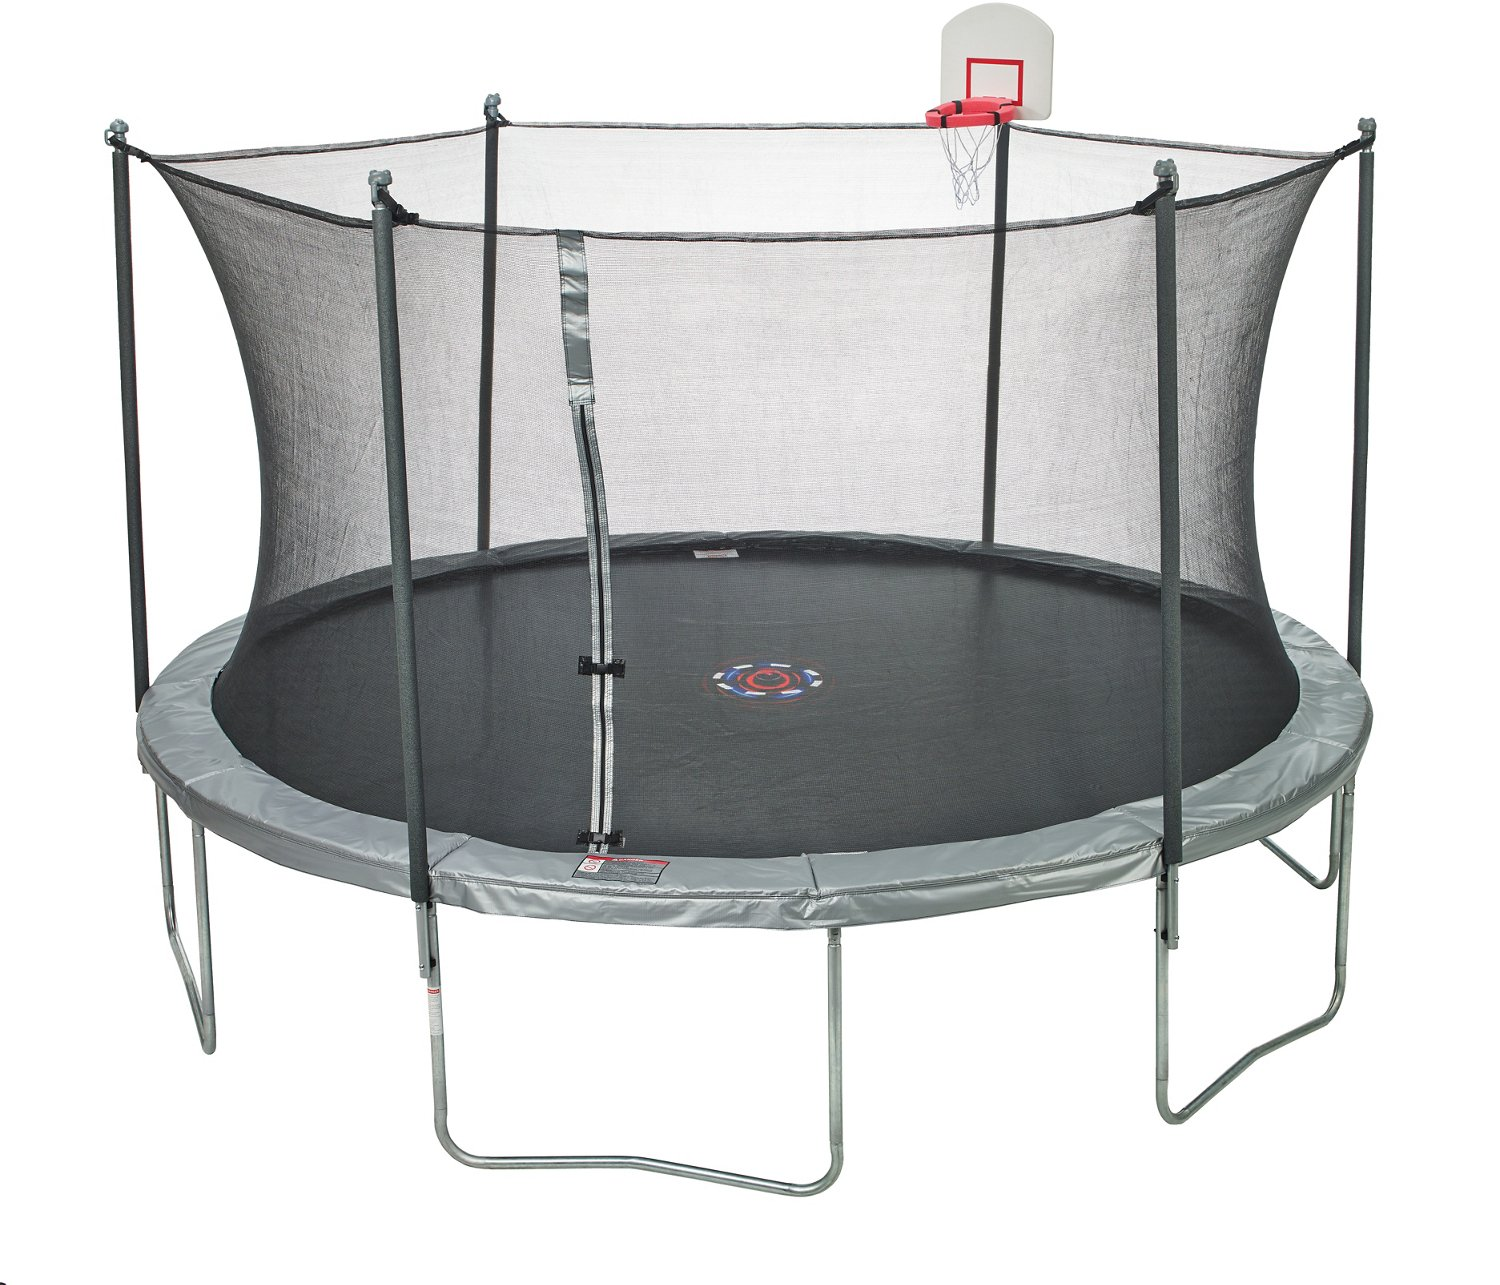 Jump Zone 15 Ft Trampoline With Dunkzone Basketball Hoop Amp Spinner Flash Litezone Academy